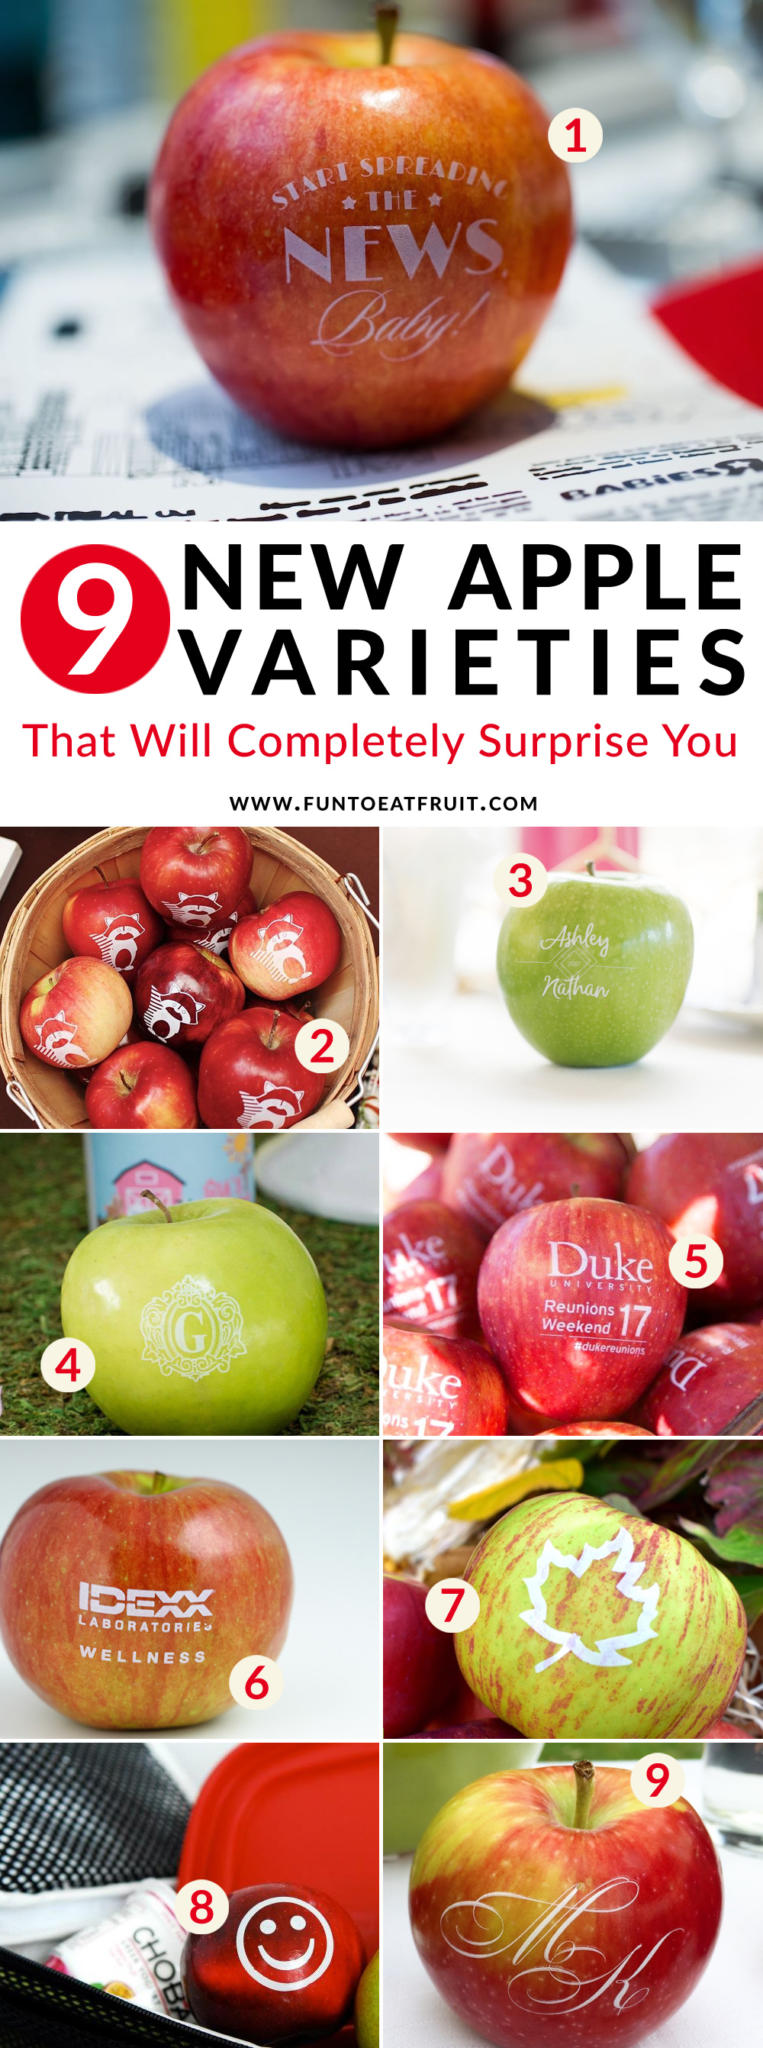 Have you heard? There's 9 new varieties of apples that will completely surprise you in this apple variety chart. Click to see what each variety of apple is along with unique ways to use apples for parties. As seen on Fun to Eat Fruit www.funtoeatfruit.com #partyideas #weddingideas #favors #ediblefavors #apples #swag #personalized #backtoschool #kidsparties #fallweddings #reunions